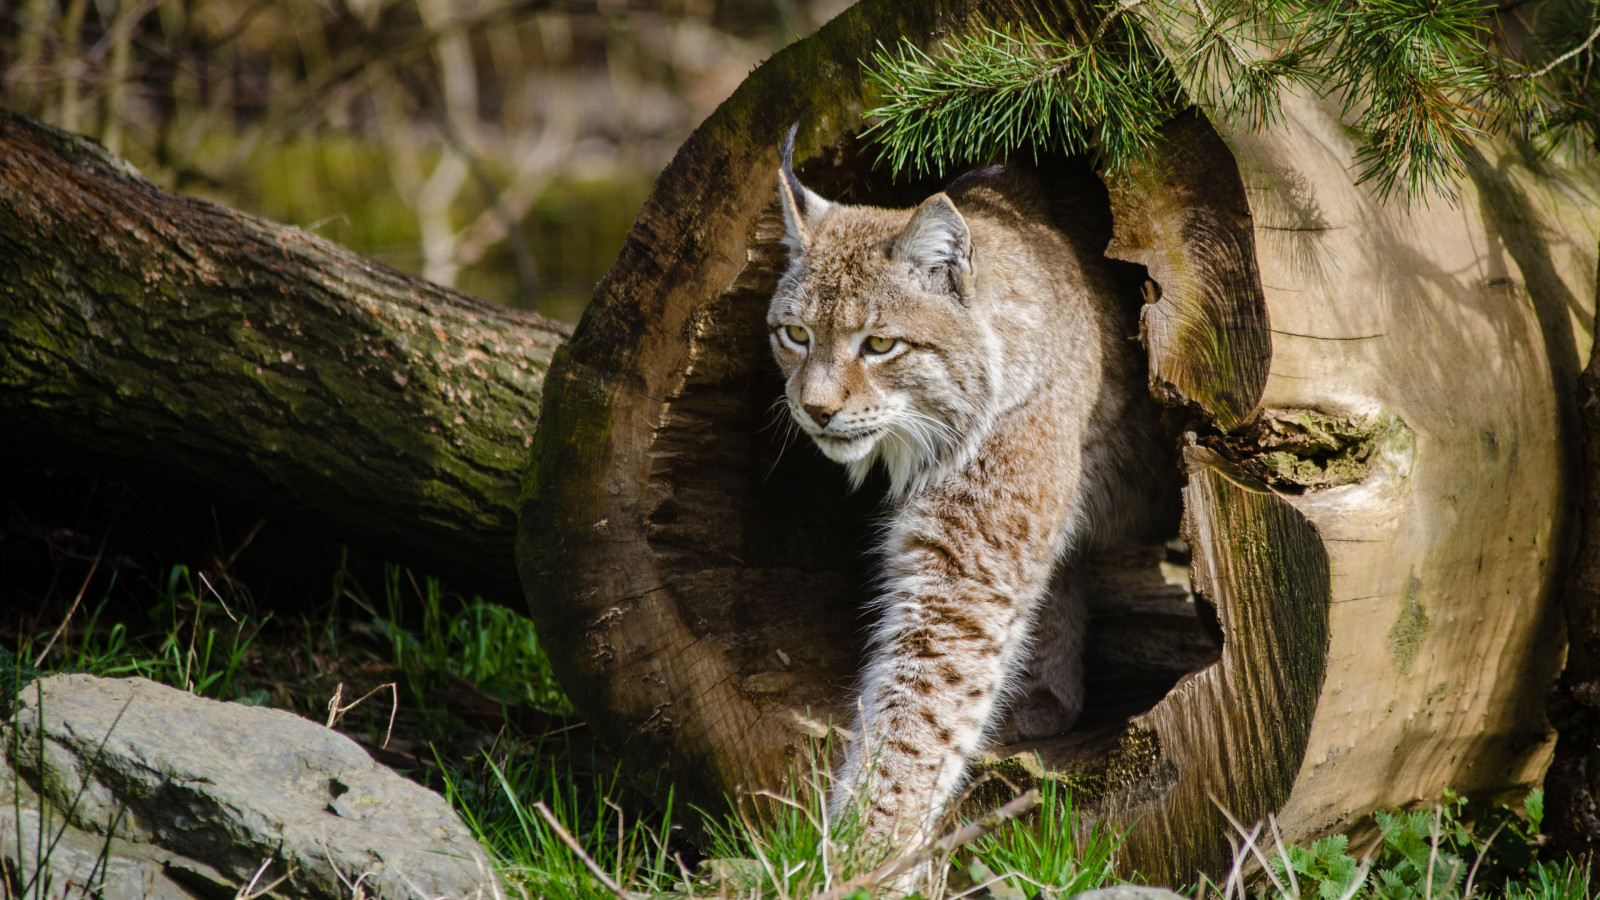 Lynx at the Zoo wallpaper 1600x900